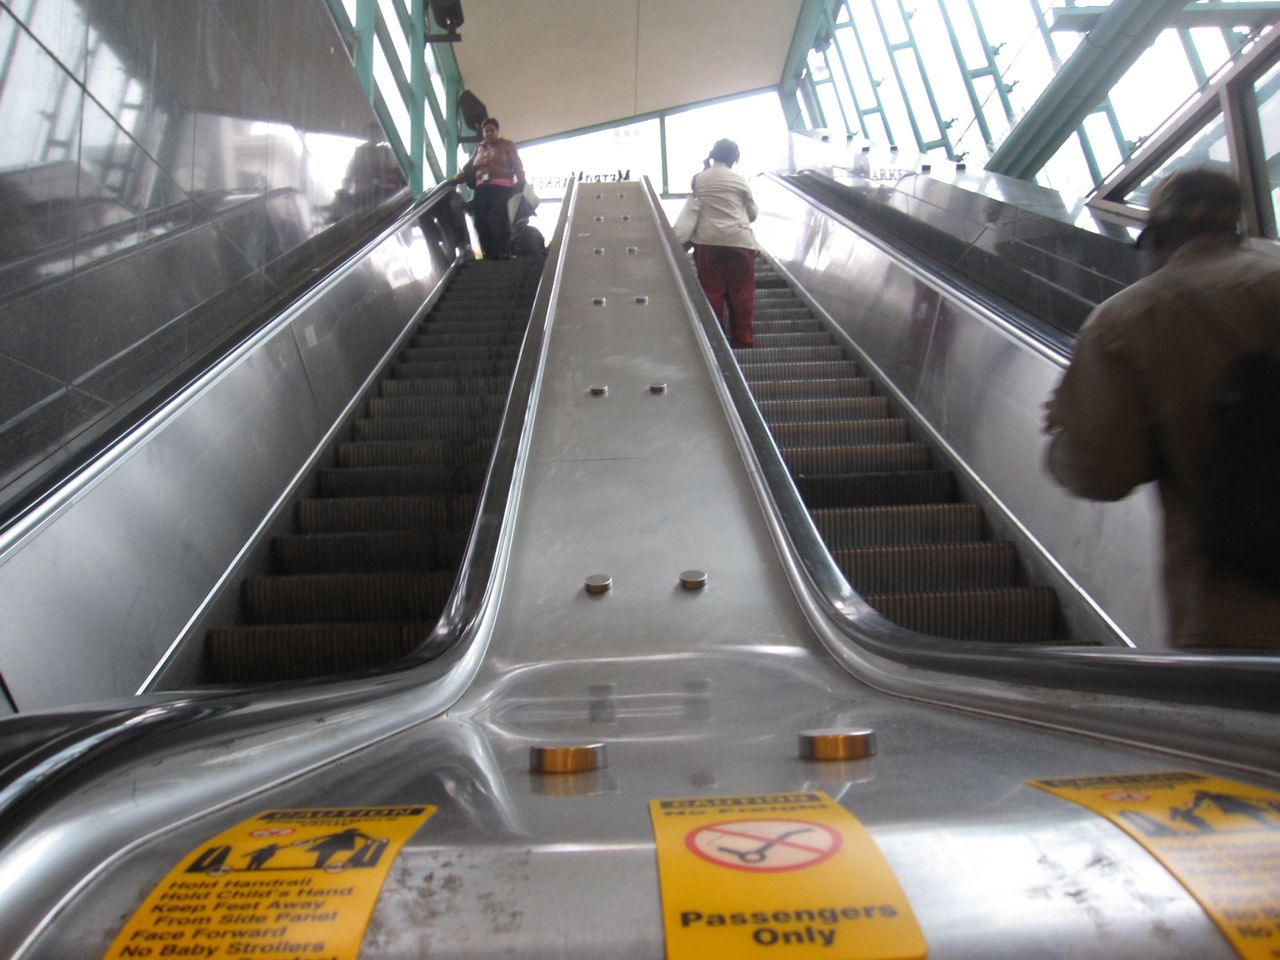 Escalator at 15th Street and Concourse